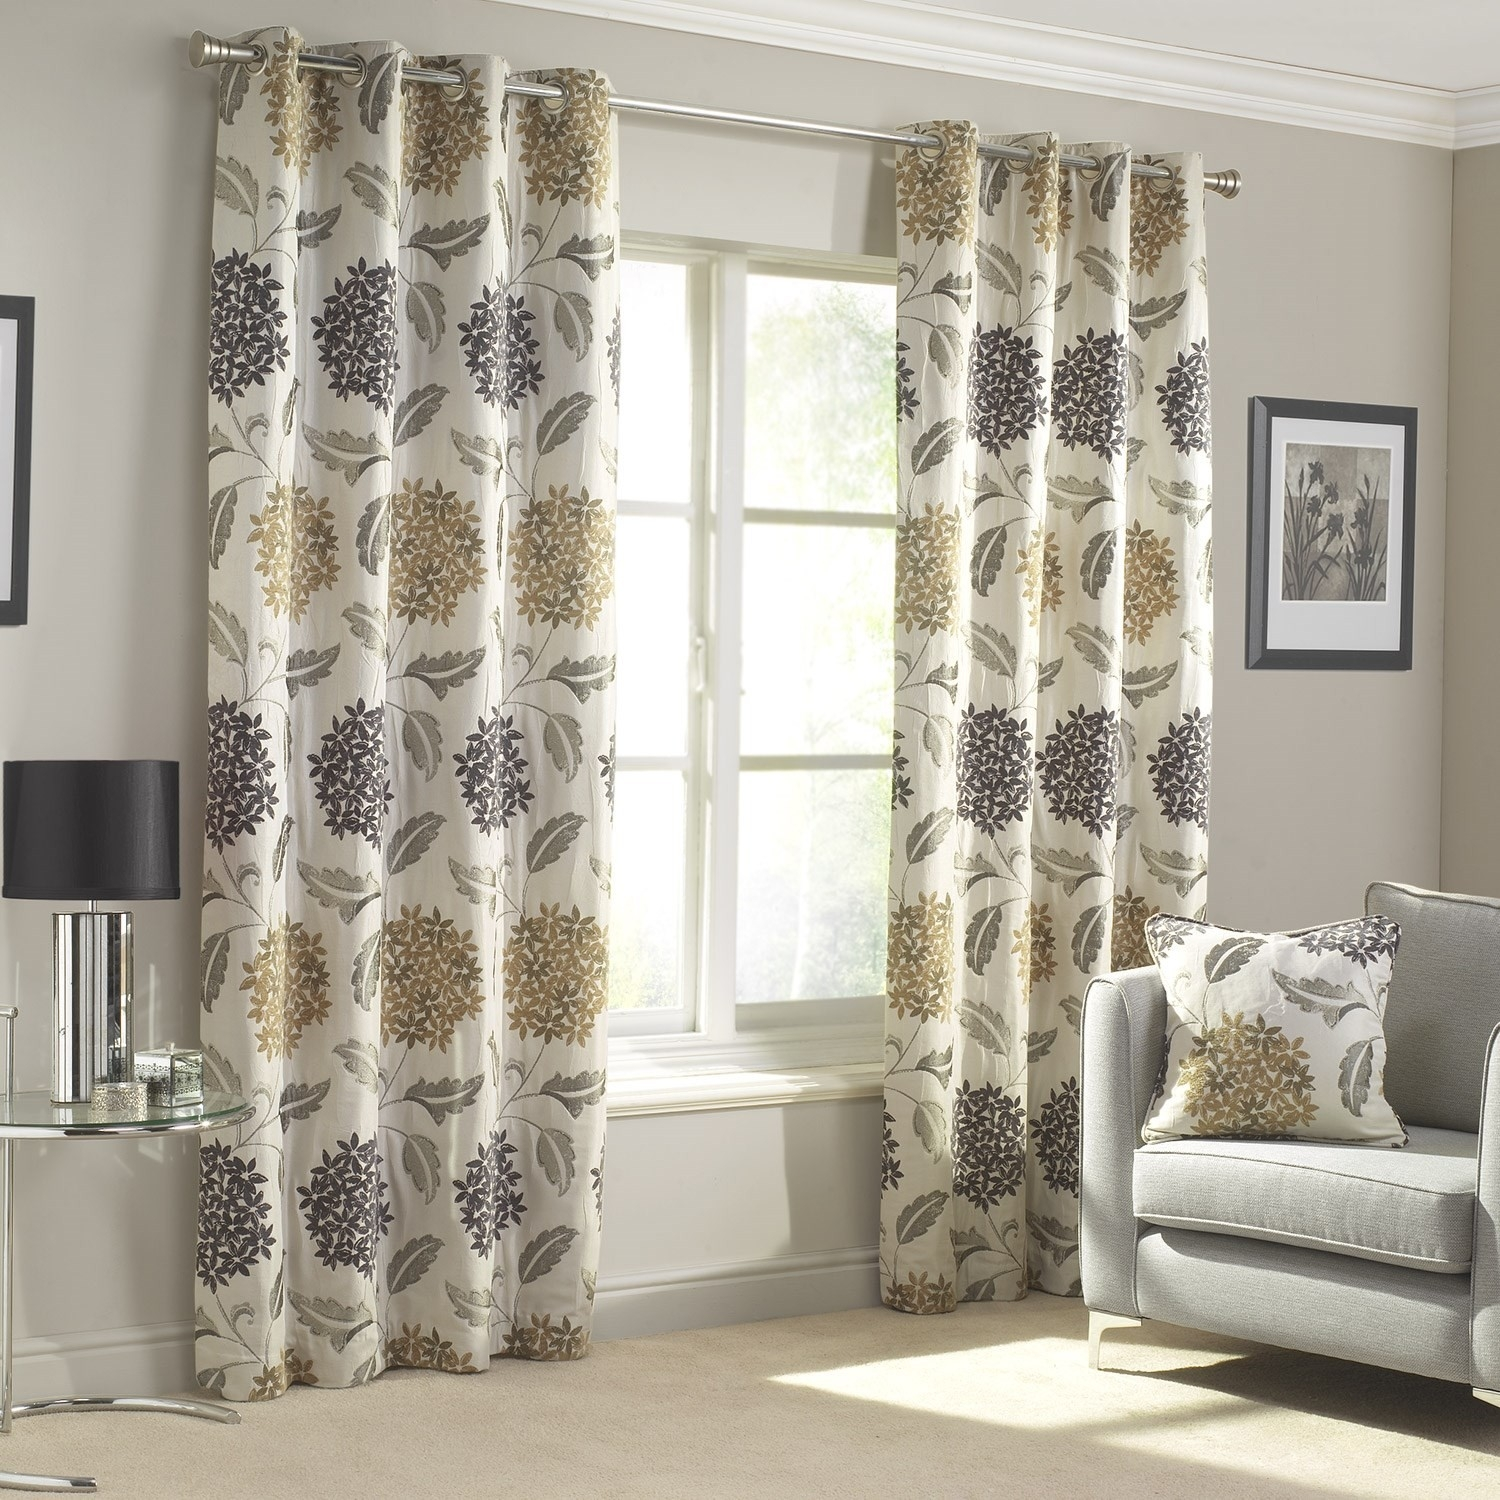 Dahlia Gold Charcoal Lined Eyelet Curtains Pair Julian Charles Inside Cream And Gold Eyelet Curtains (Image 9 of 15)